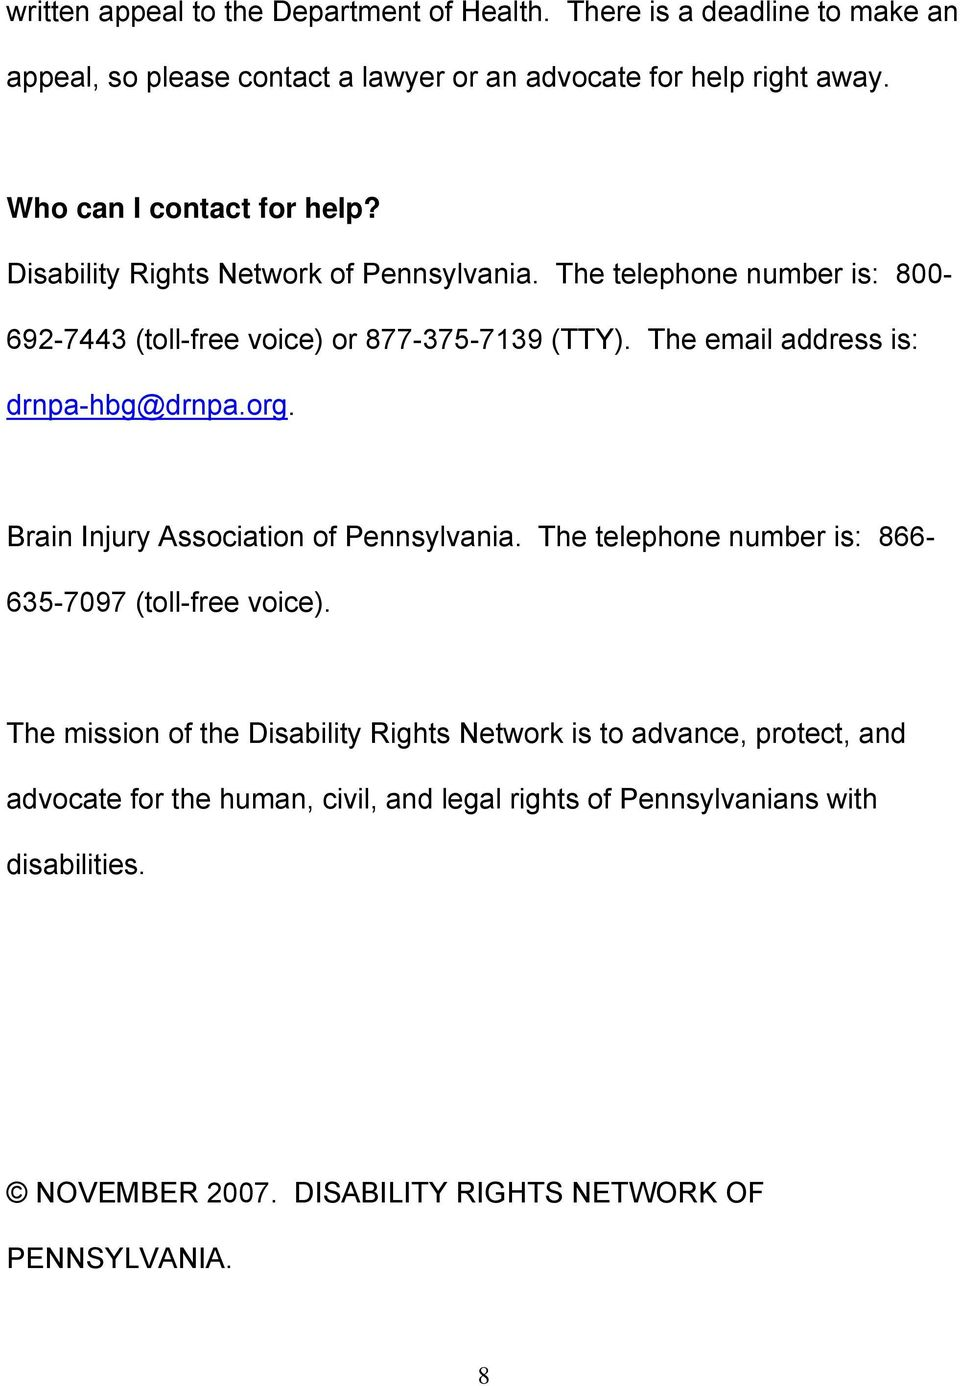 The email address is: drnpa-hbg@drnpa.org. Brain Injury Association of Pennsylvania. The telephone number is: 866-635-7097 (toll-free voice).